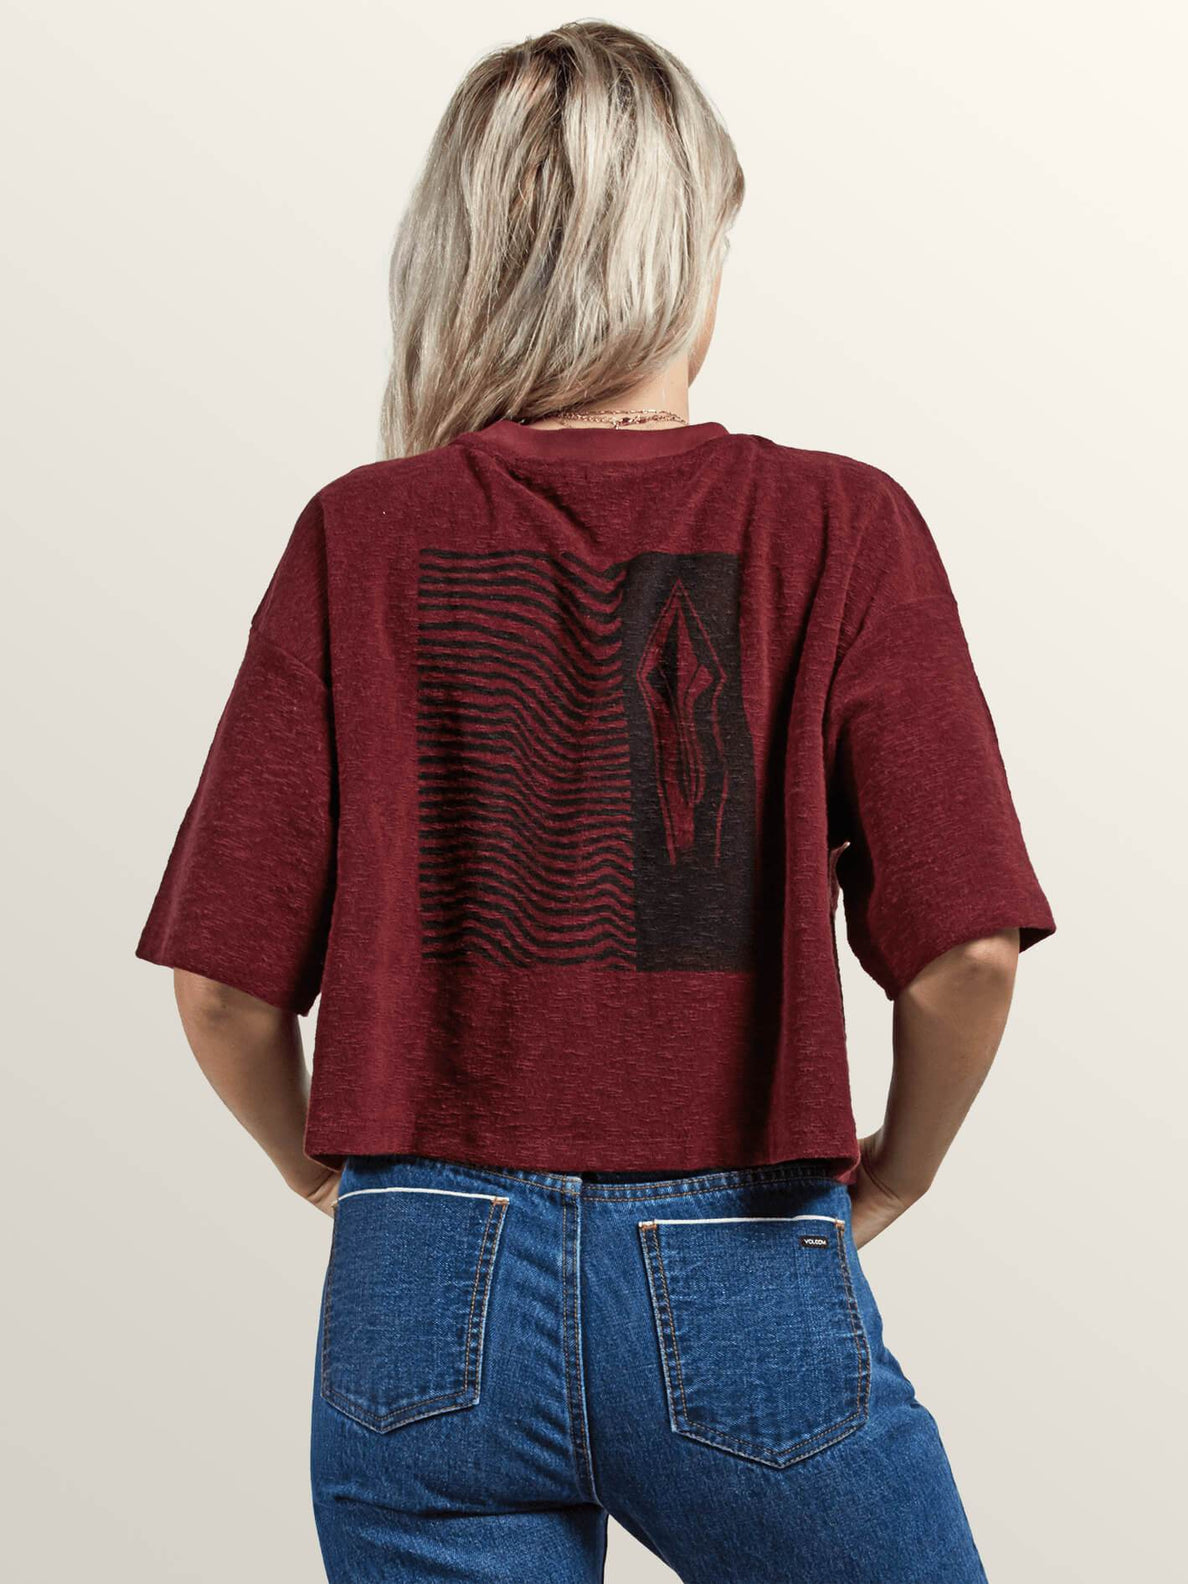 Recommended 4 Me  T-shirt - Burgundy